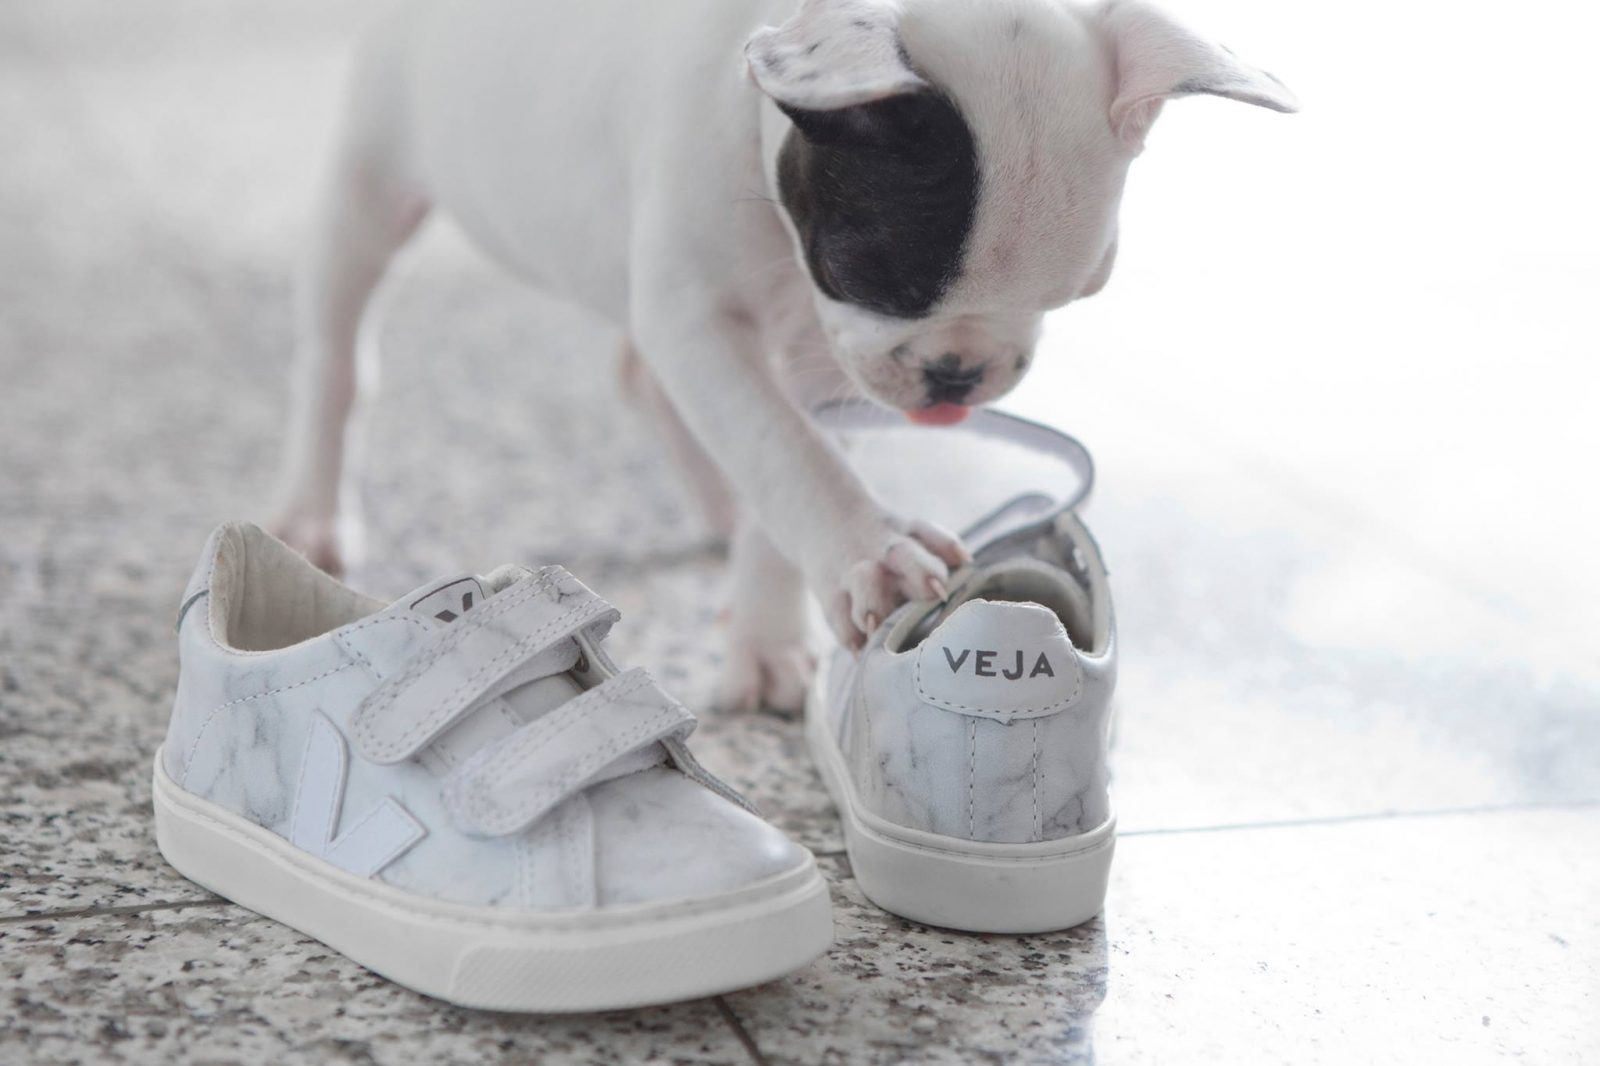 Veja Diapers and Milk collaborations sneakers marble esplar puppy